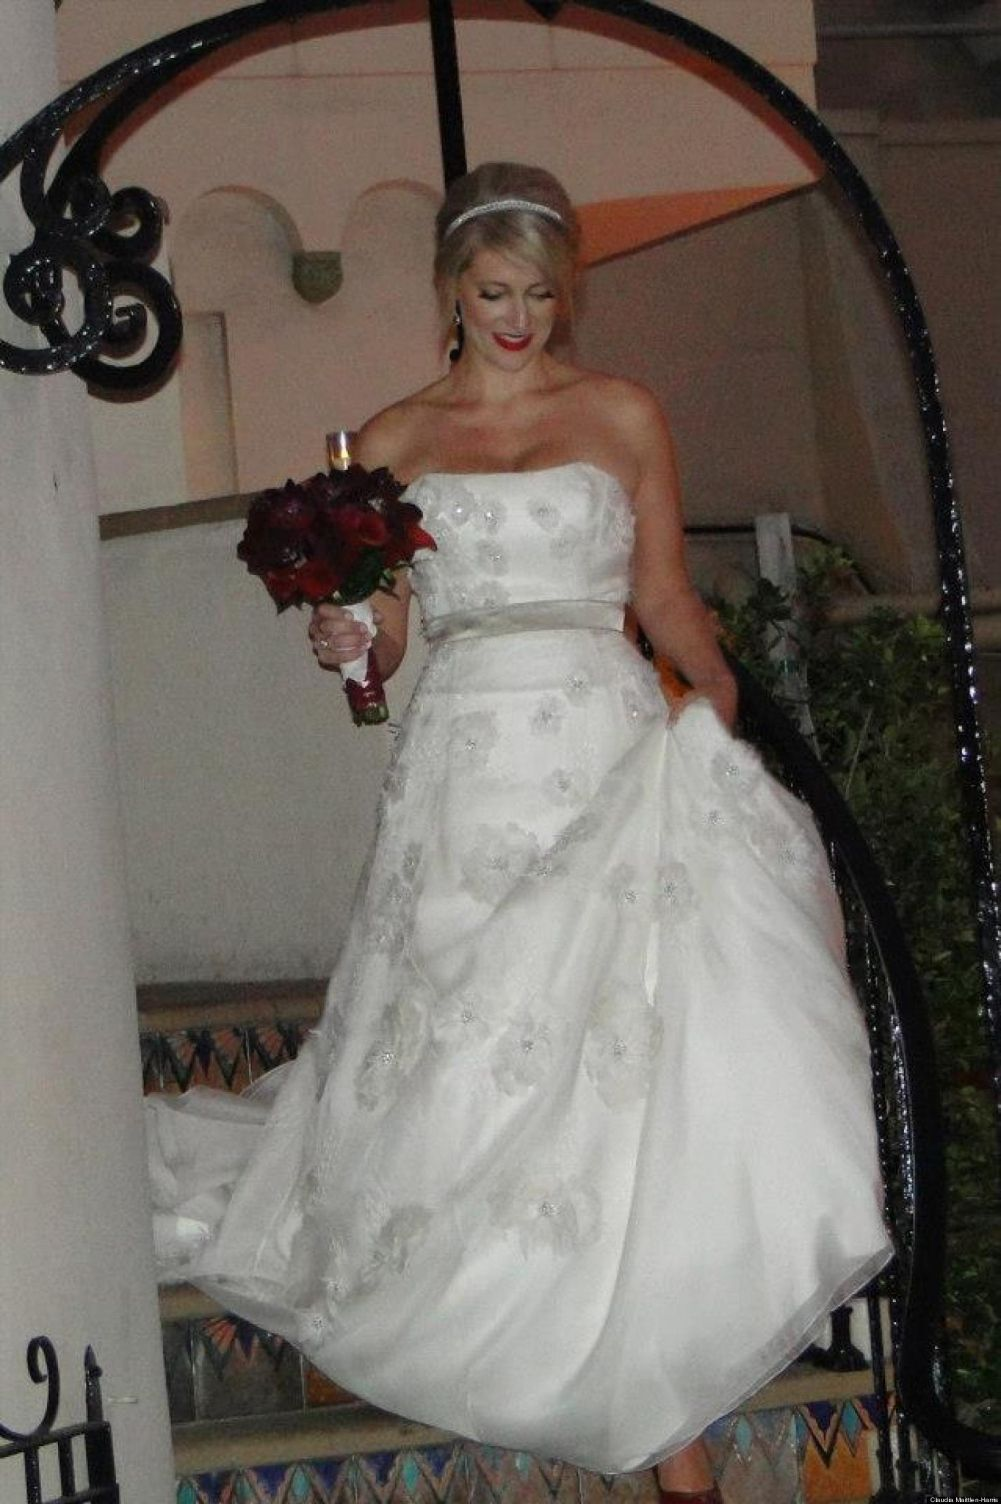 Where to Sell Used Wedding Dress Wedding Dresses for